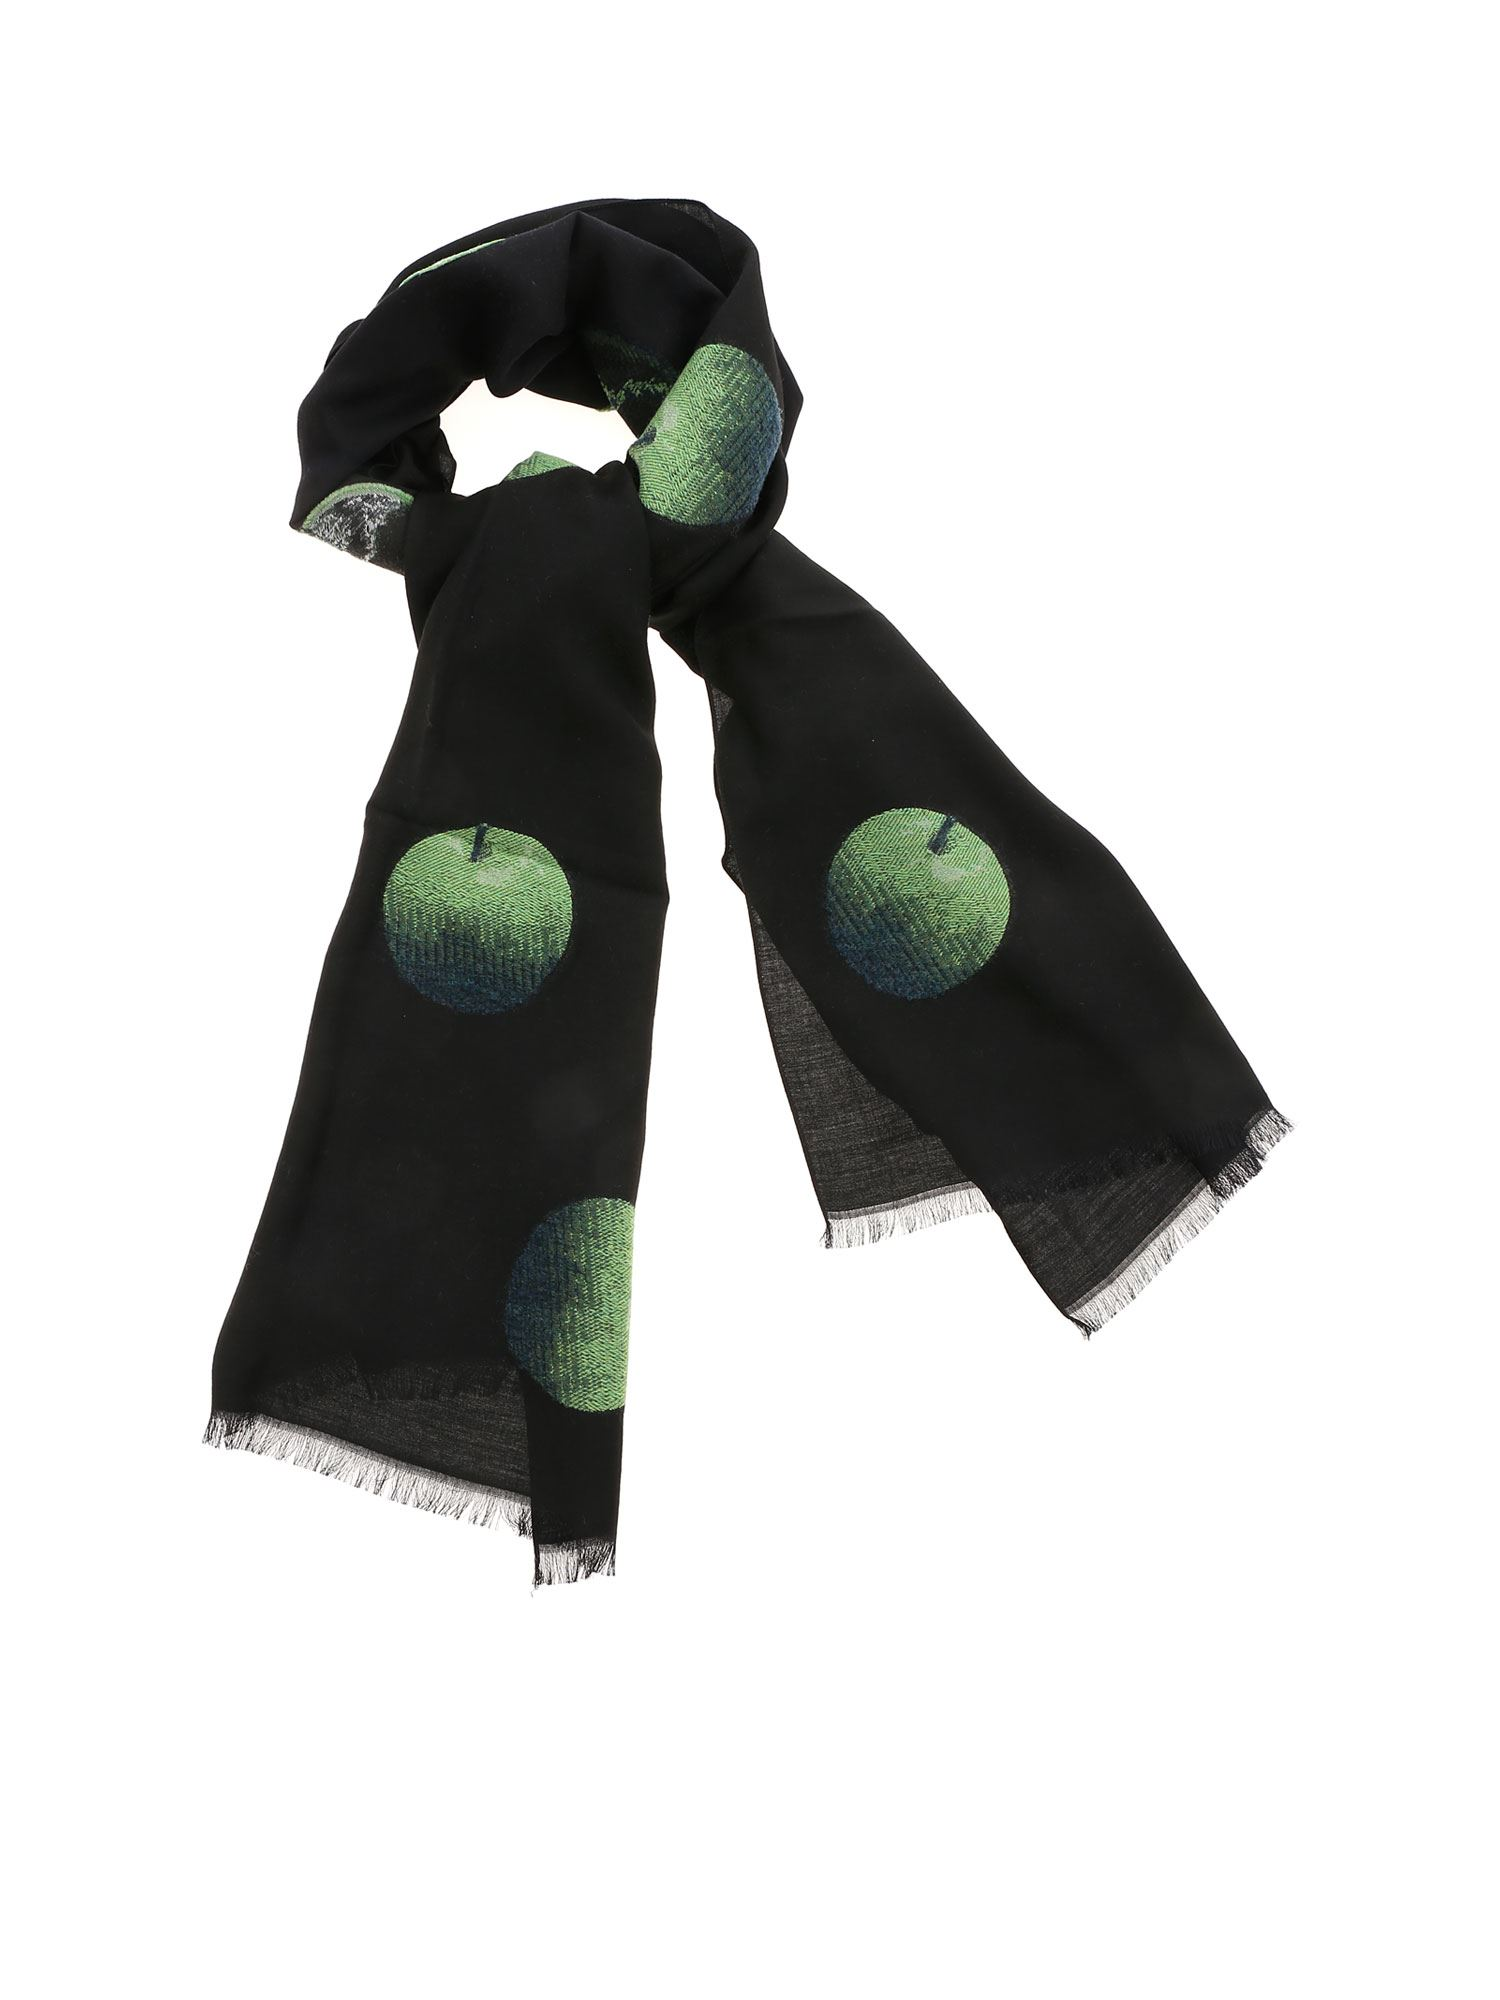 Paul Smith GREEN EMBROIDERY FOULARD IN BLACK